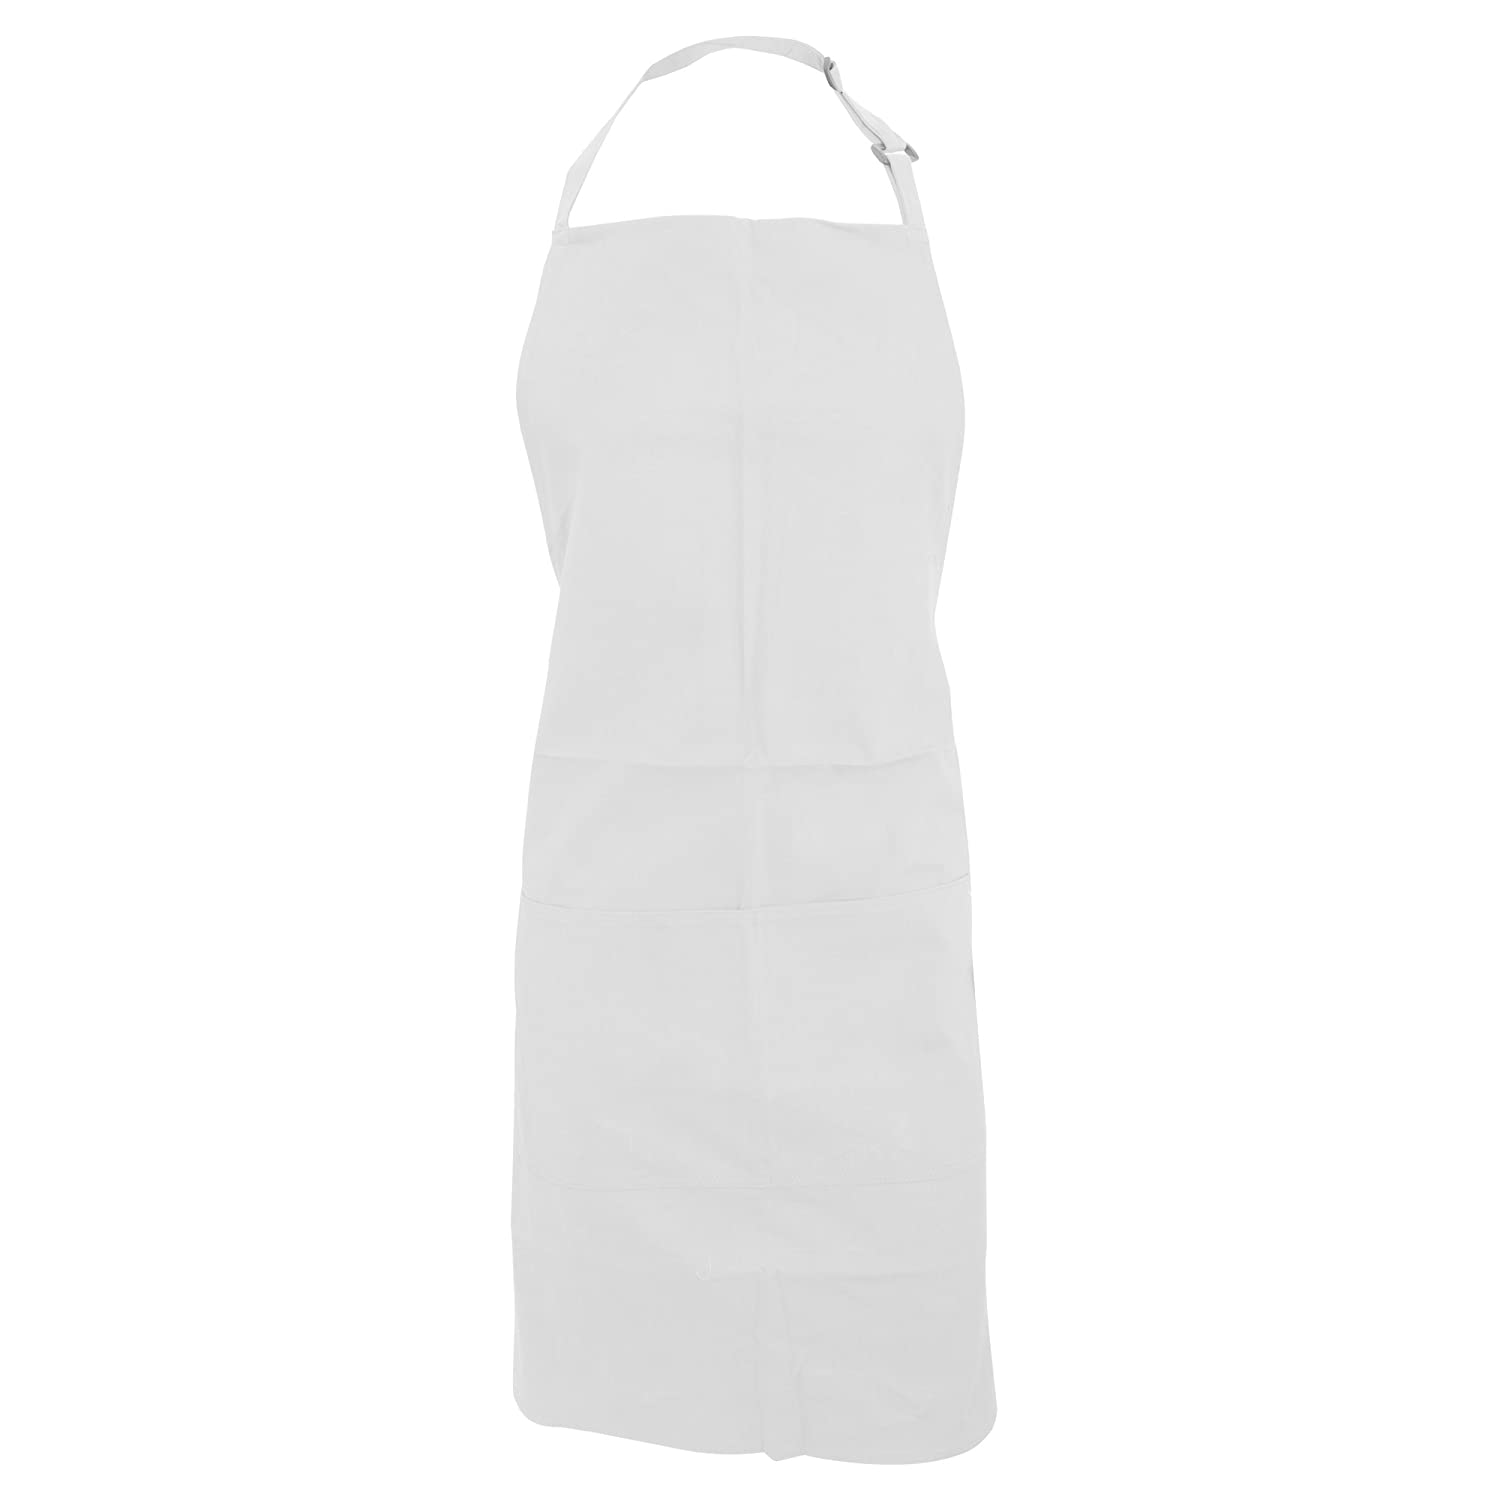 Bargear Adults Unisex Catering/Restaurant Bib Apron (One Size) (White) UTRW3949_1